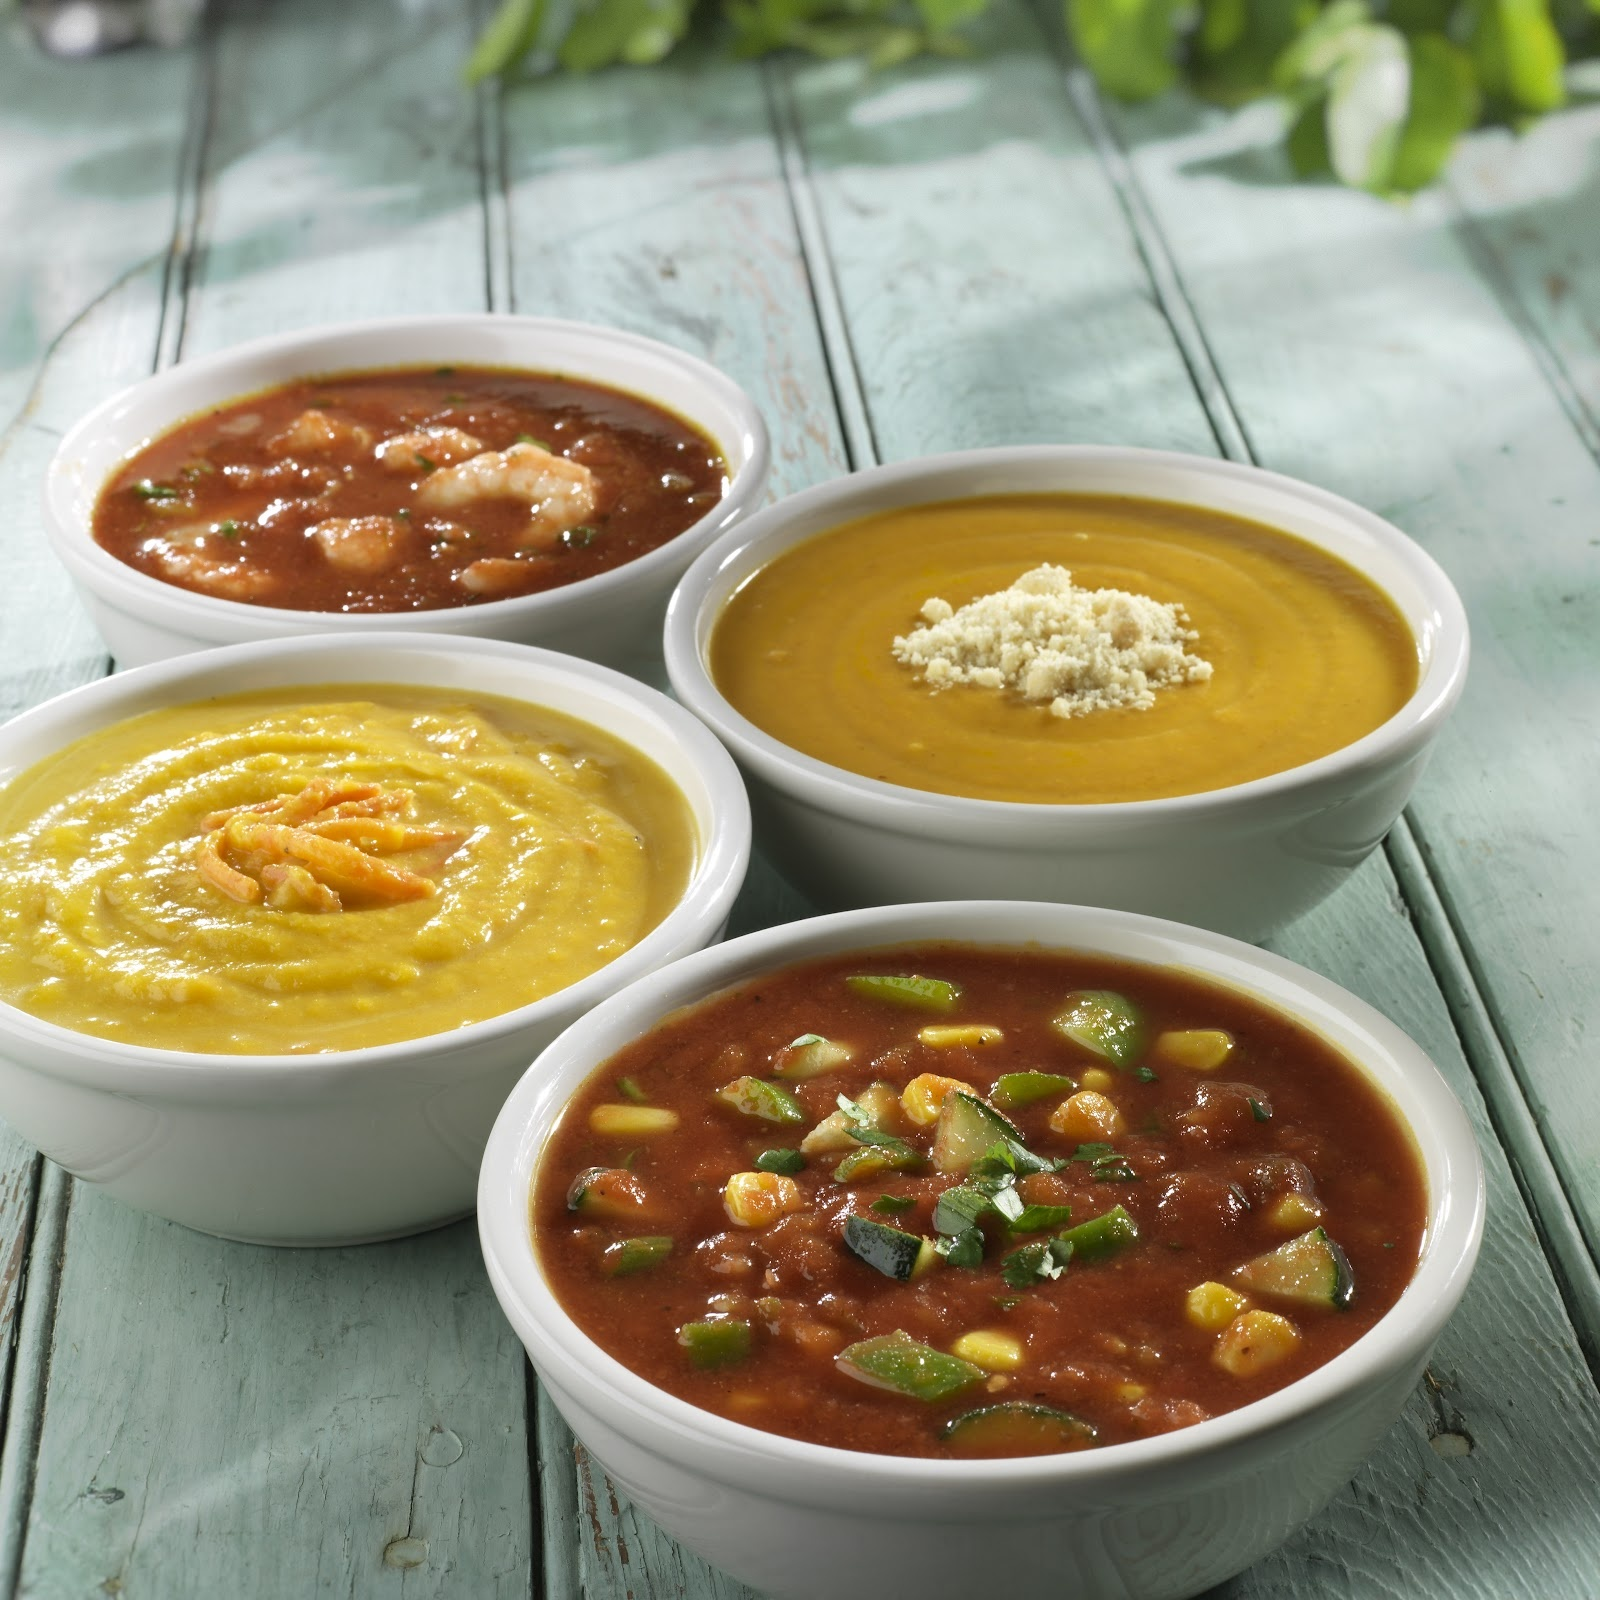 Profitable Turnkey Fast Casual Soup Concept with 2 Locations